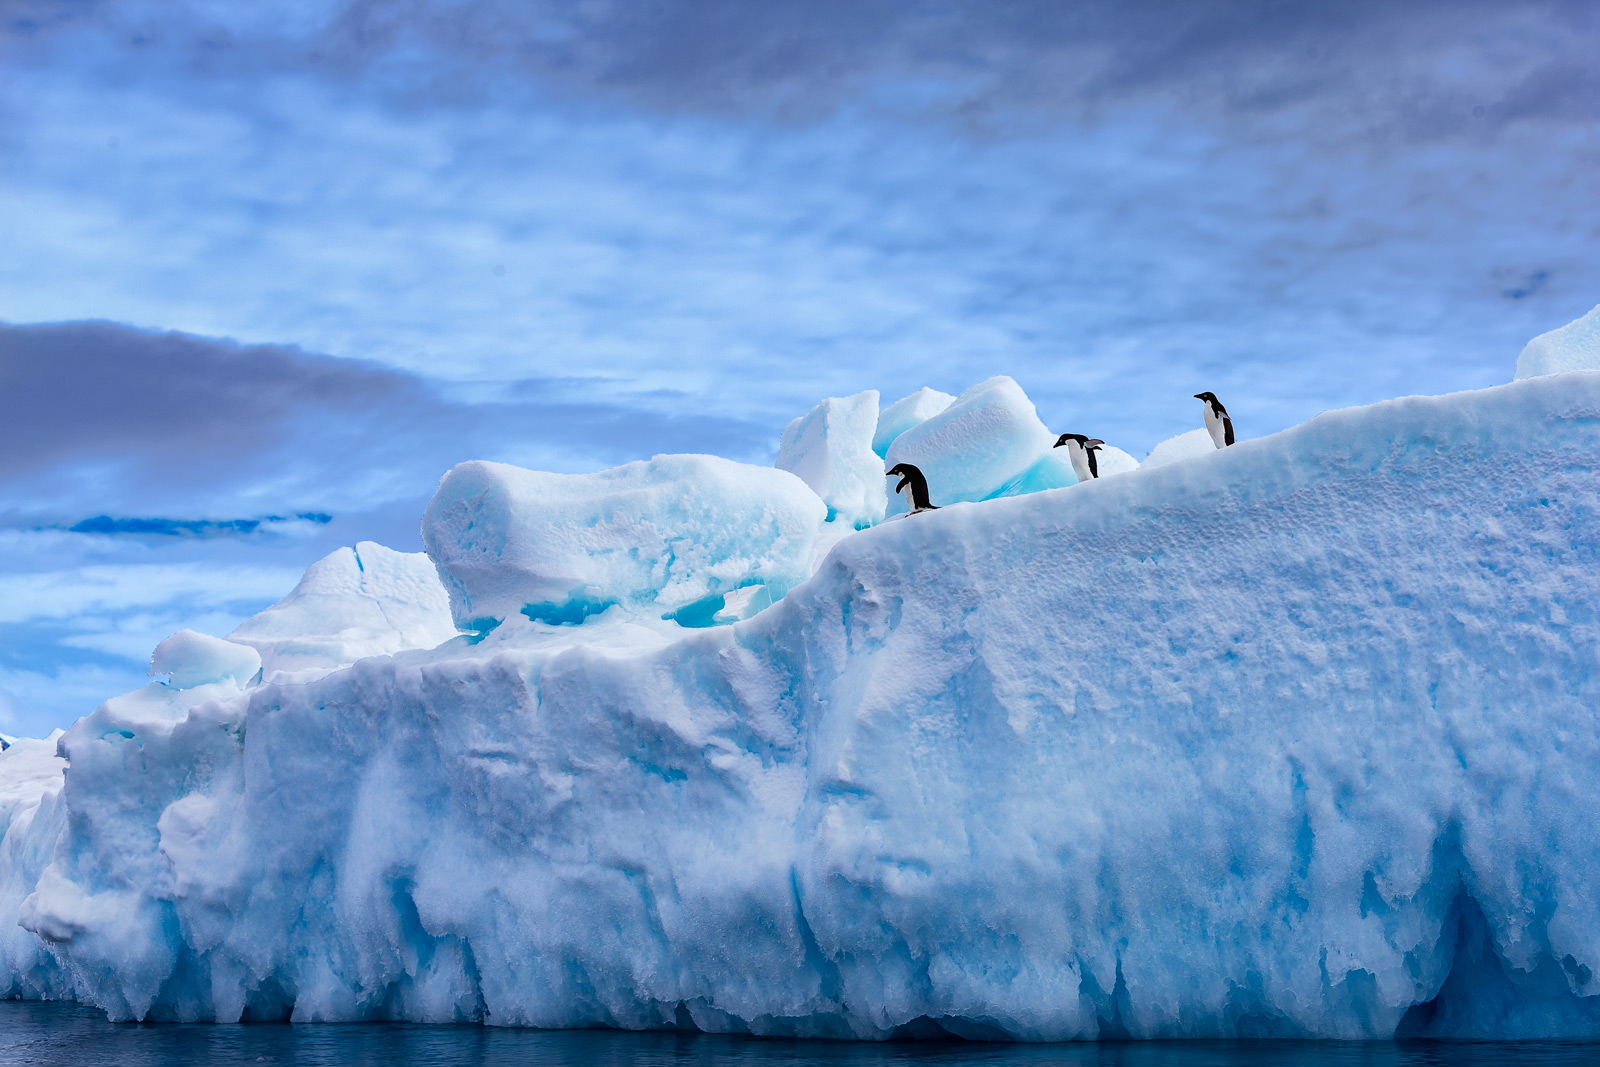 A Limited Edition, Fine Art photograph of three penguins making their way down a huge iceberg set against blue skies in Hope...